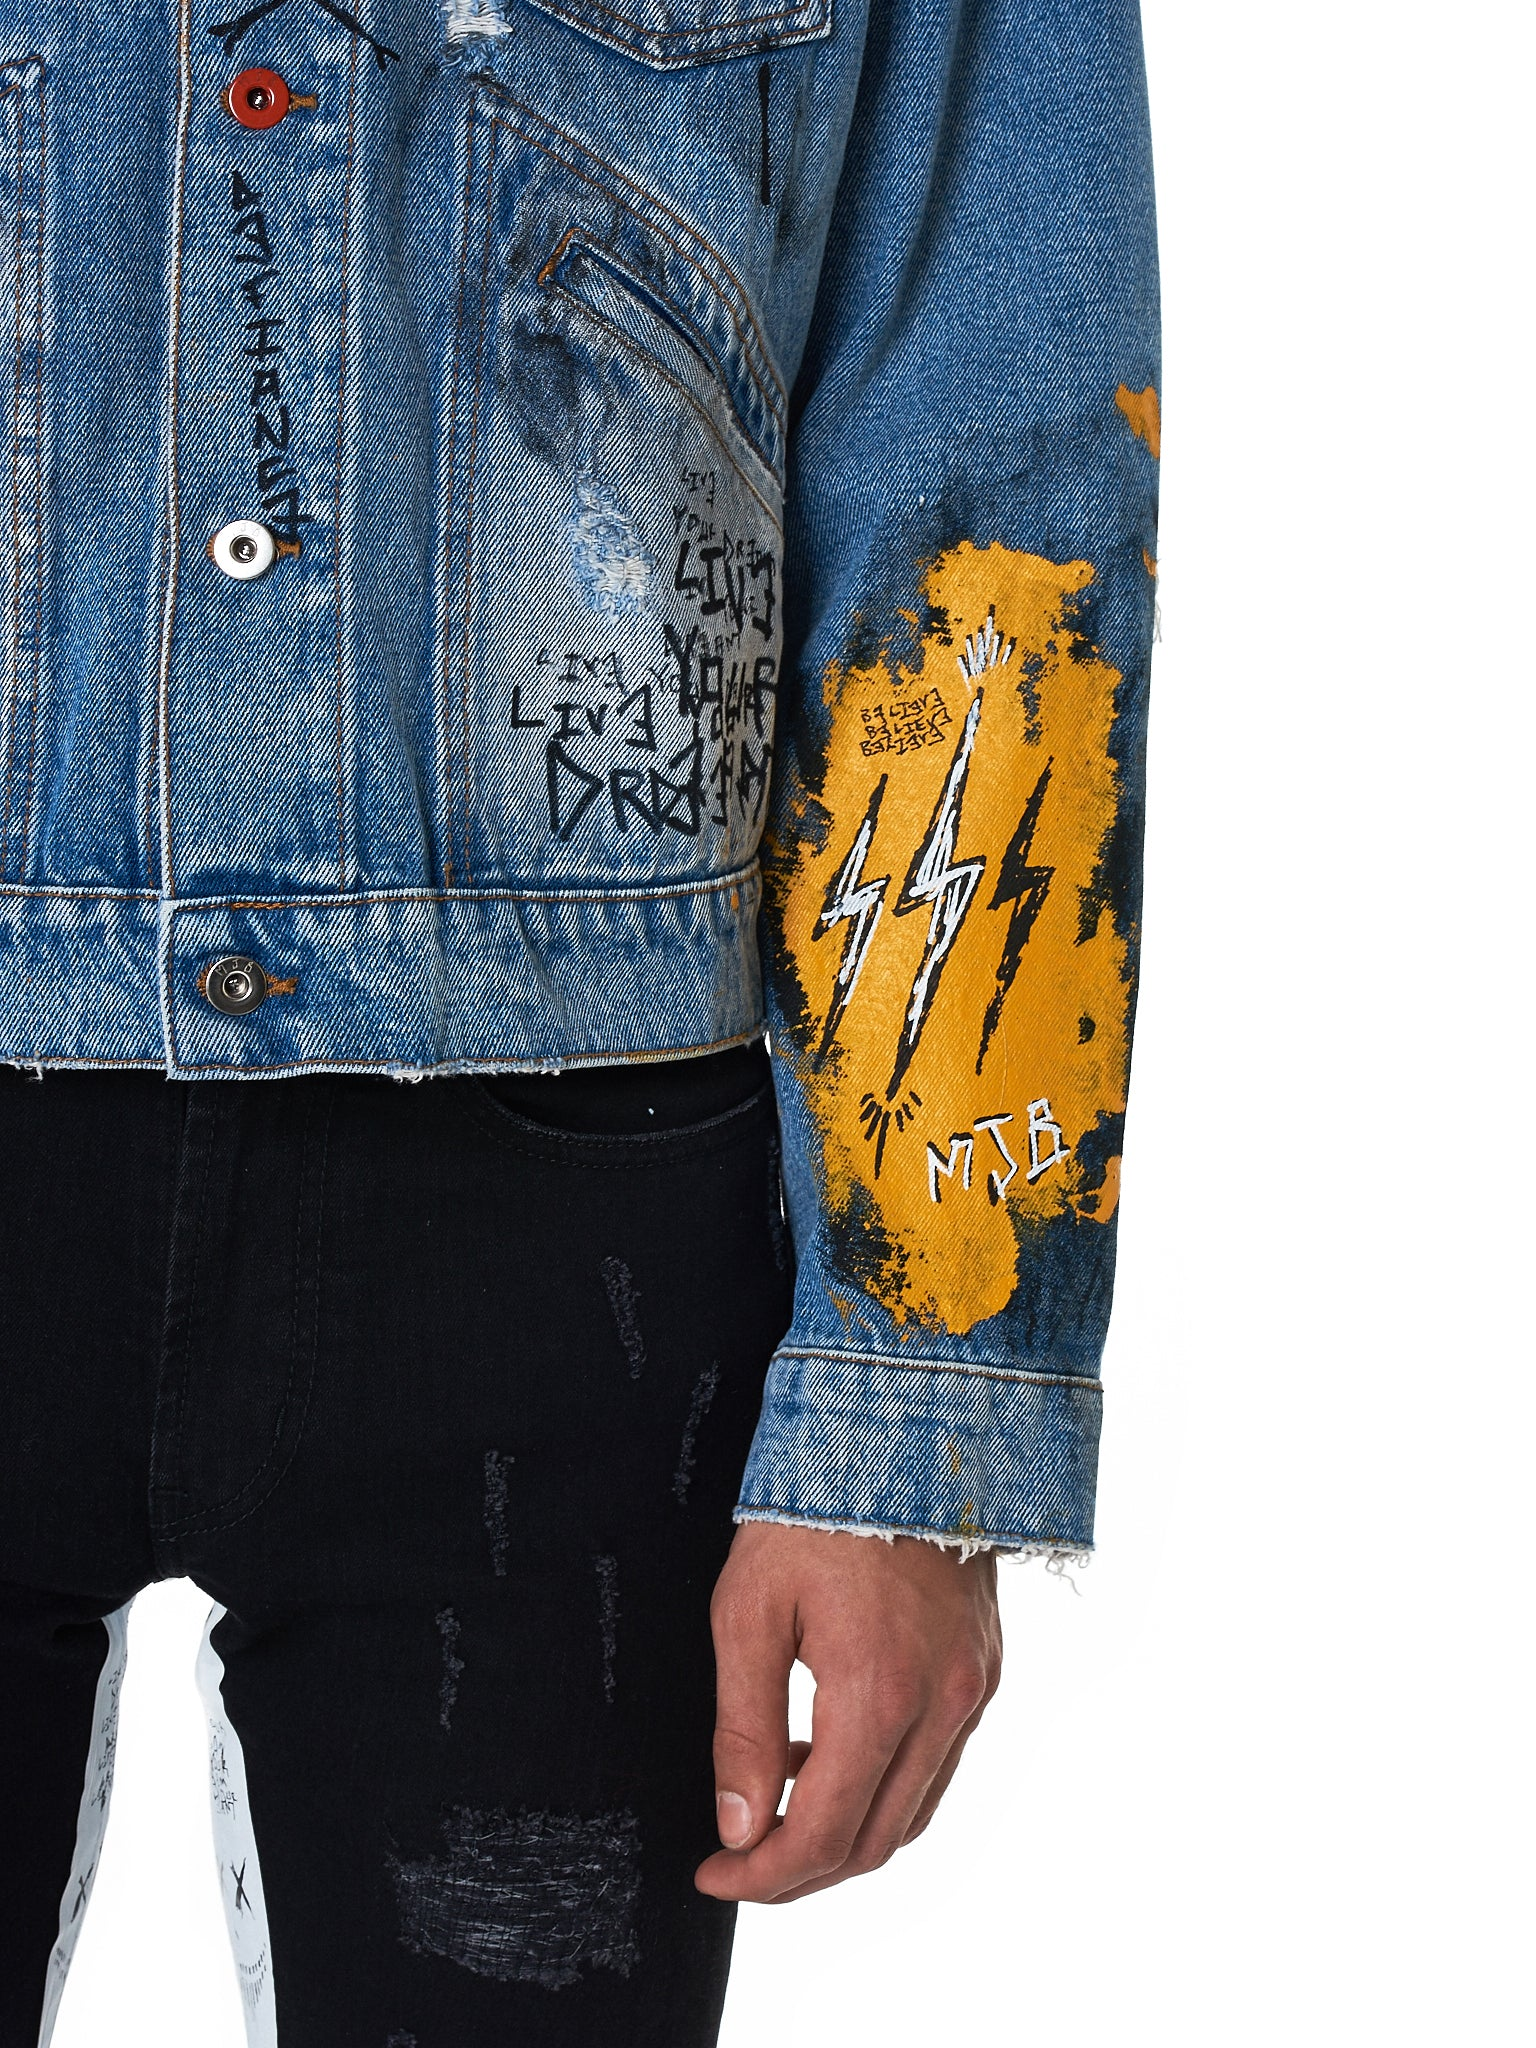 MJB (Marc Jacques Burton) Denim Jacket - Hlorenzo Detail 5